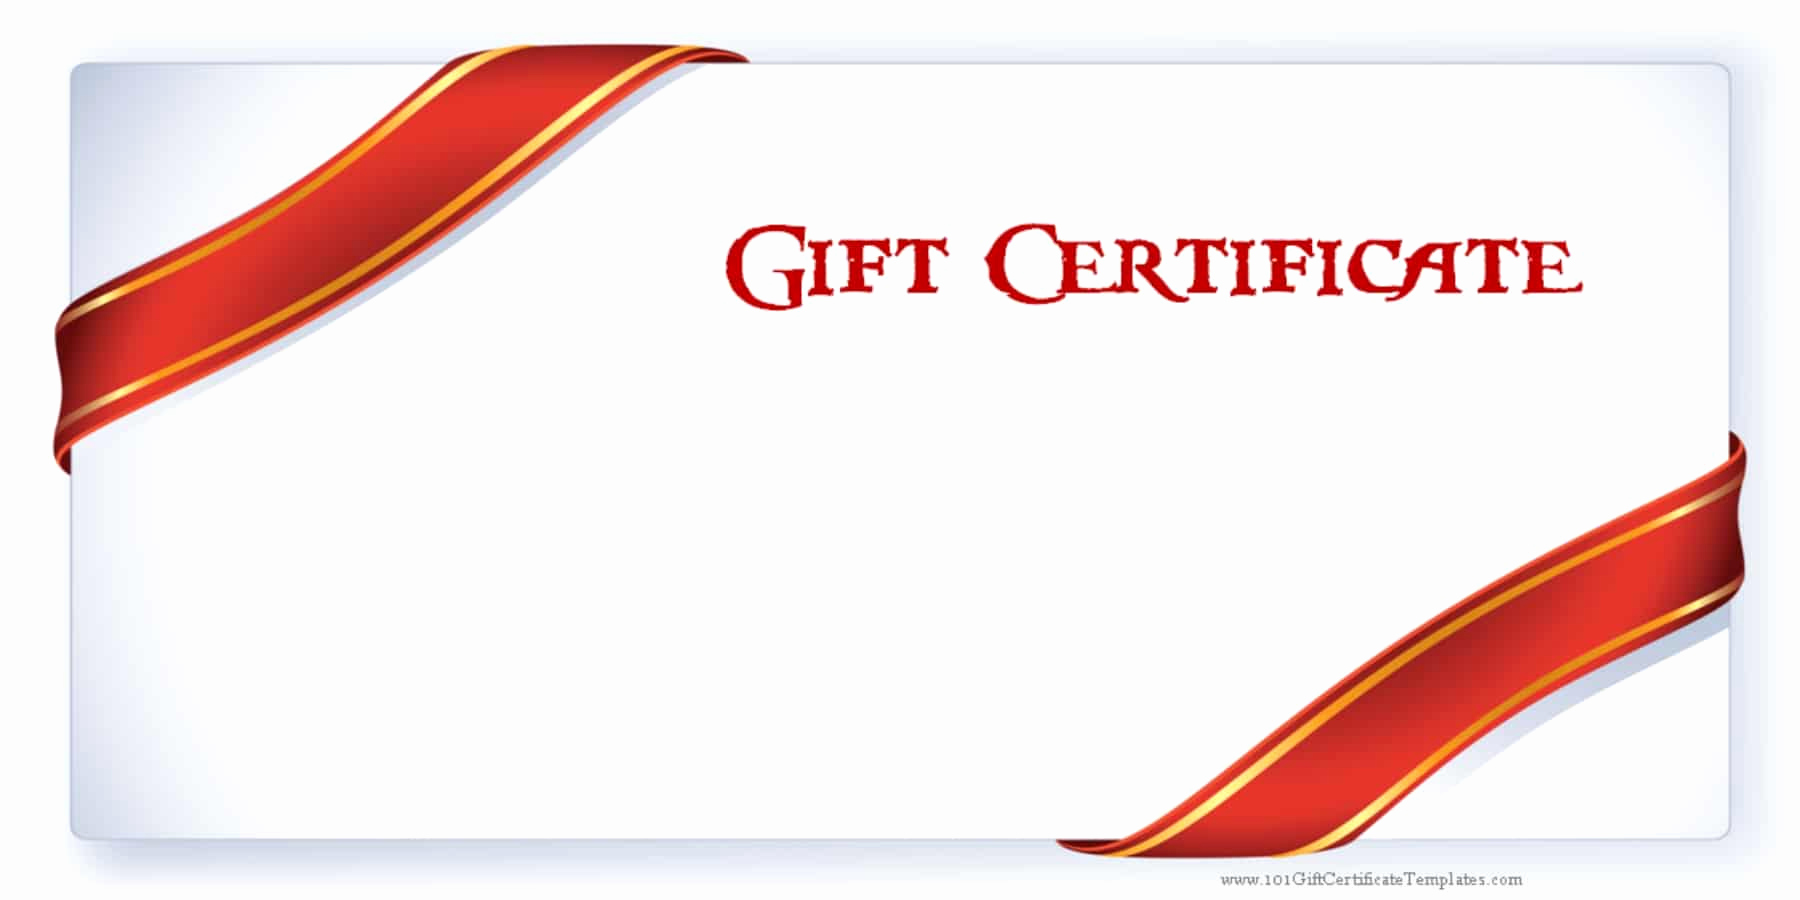 Customizable Gift Certificate Template Unique Printable Gift Certificate Templates